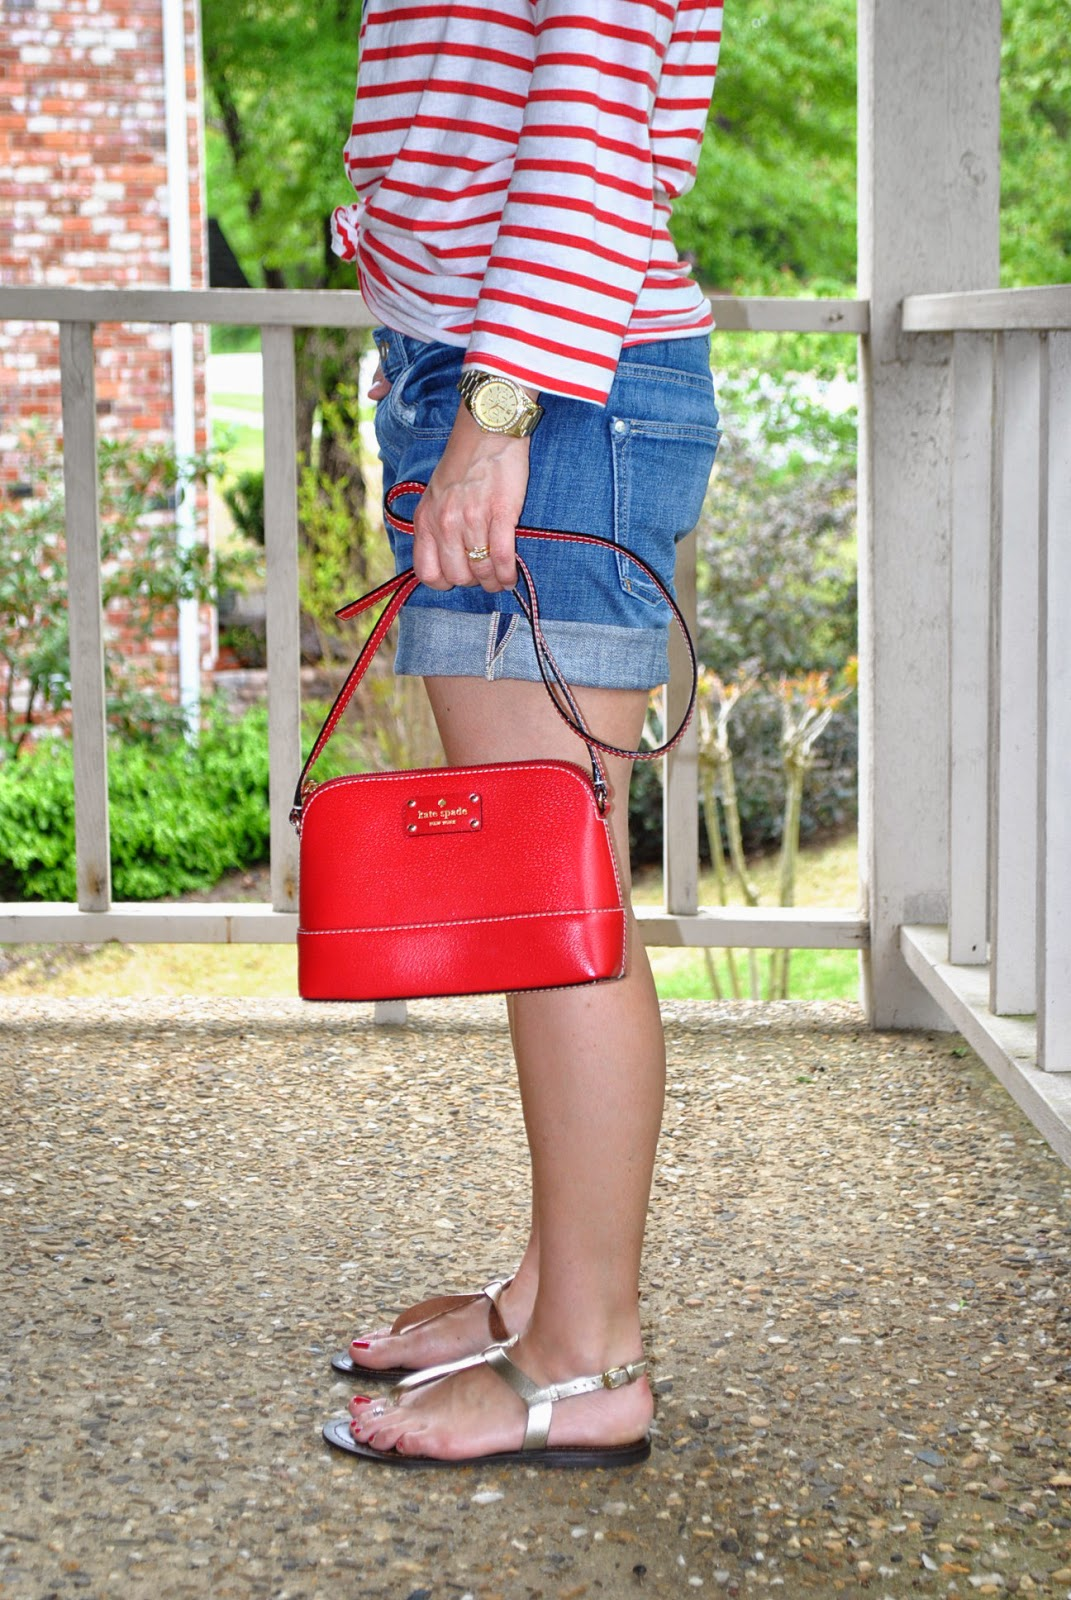 Target Merona fedora hat, J crew Sunglasses anthropologie sundry weekend tee, anthropologie denim shorts, red crossbody, gold sandals how to style denim shorts